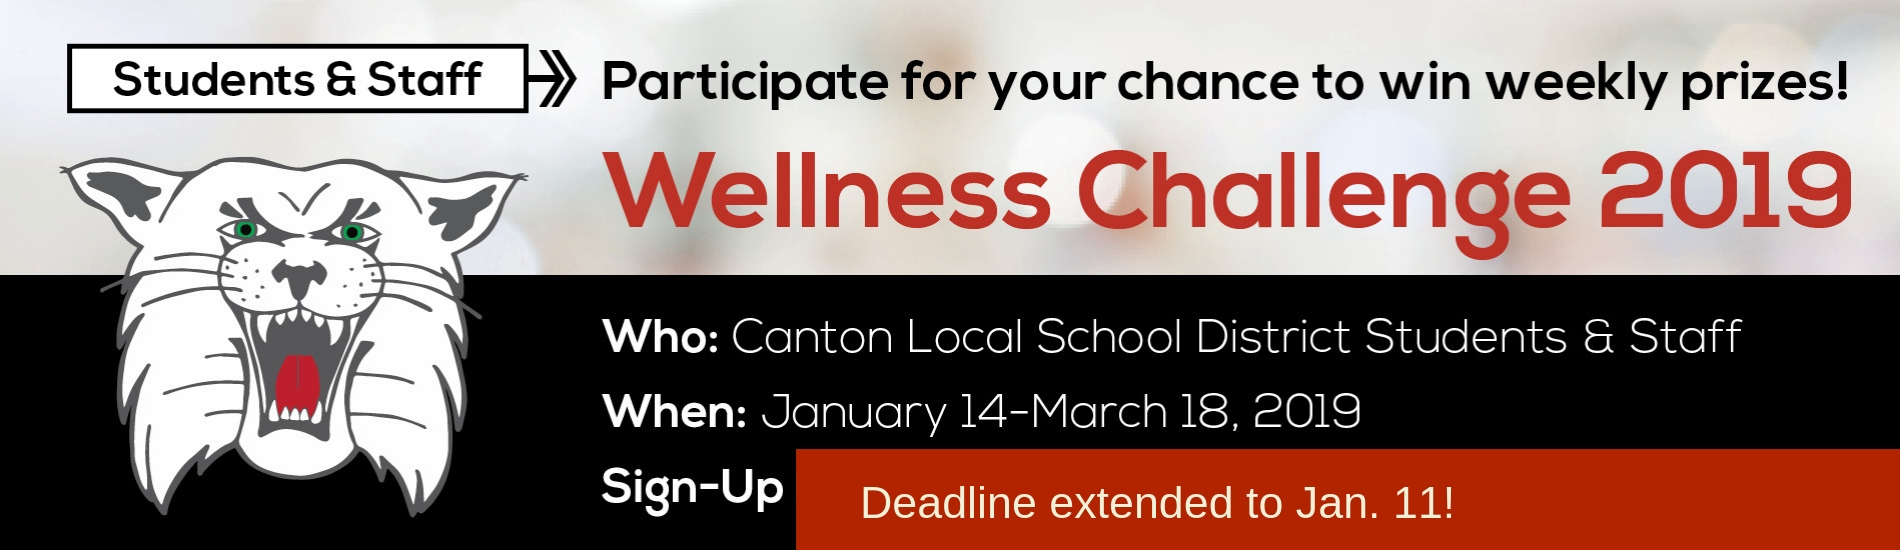 wellness challenge art